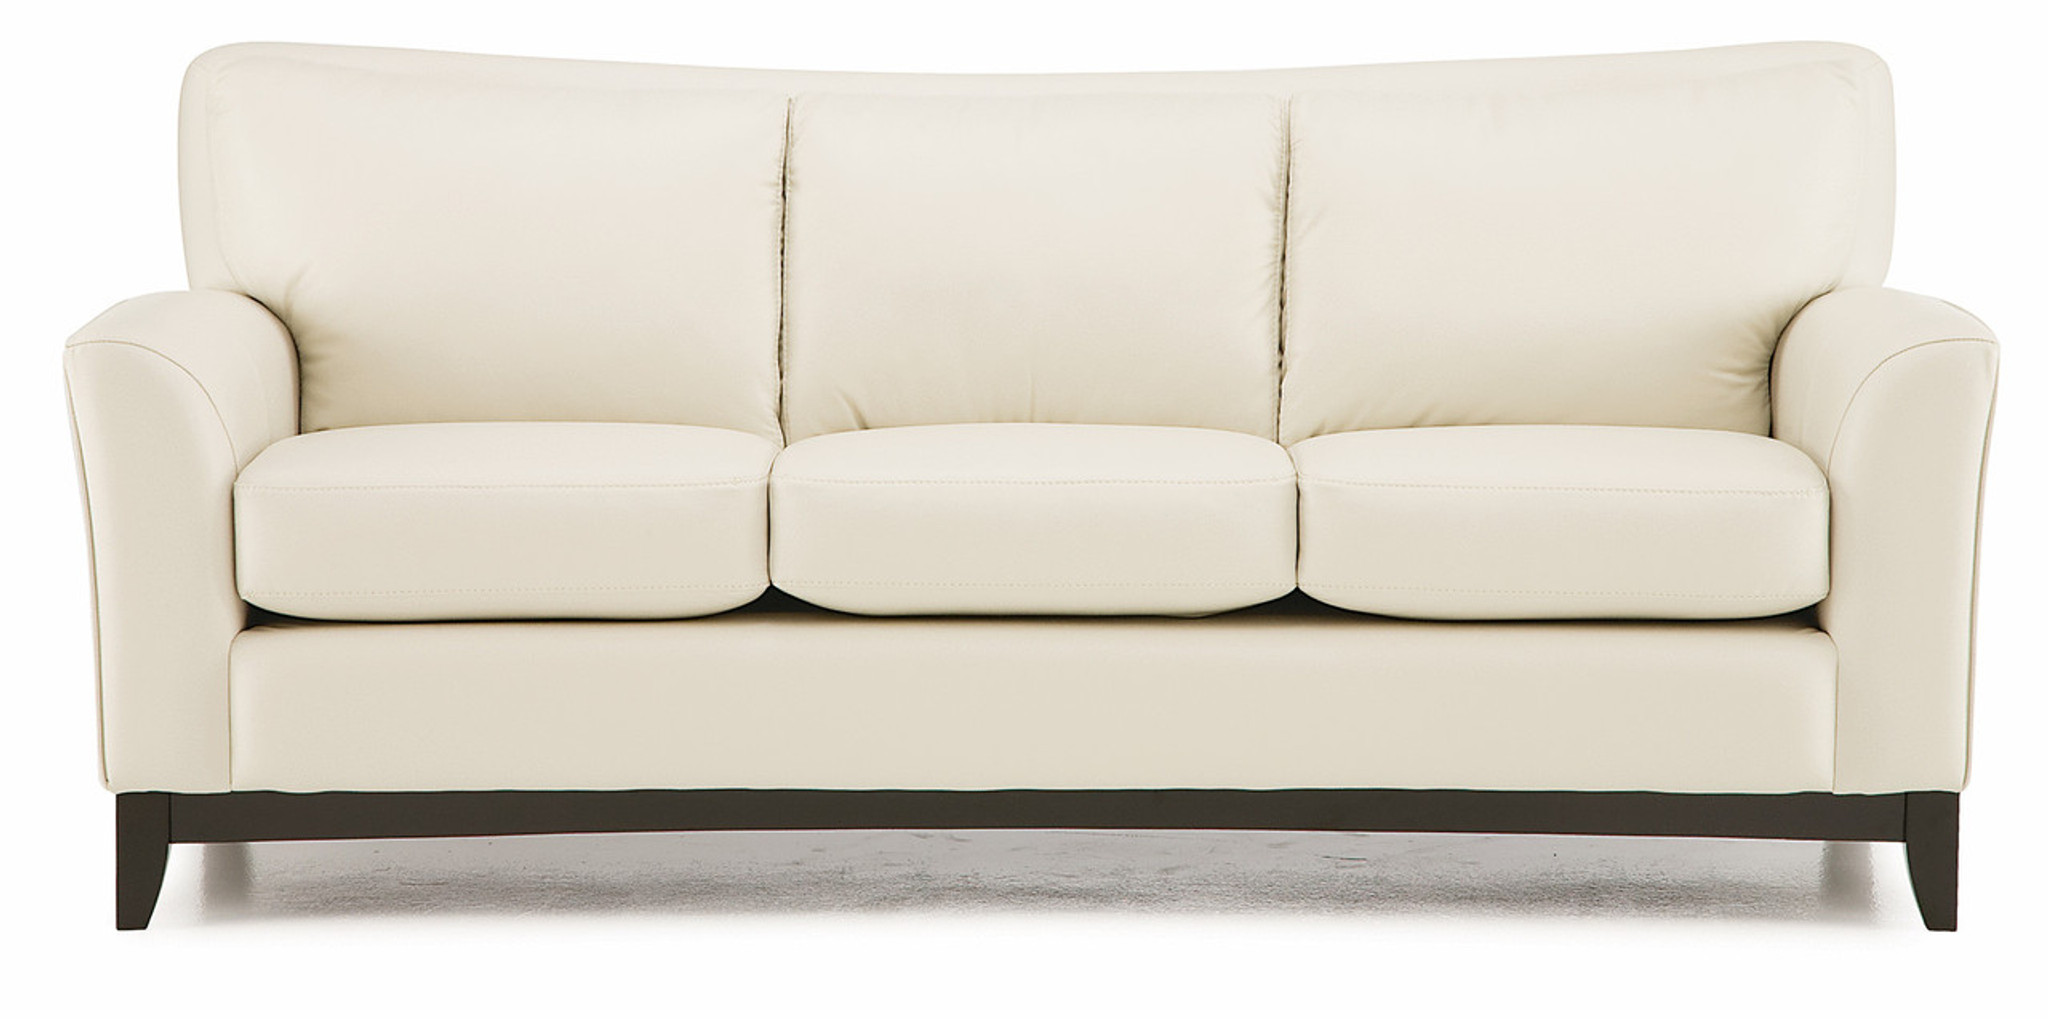 White Leather Couch Palliser 77287 White India